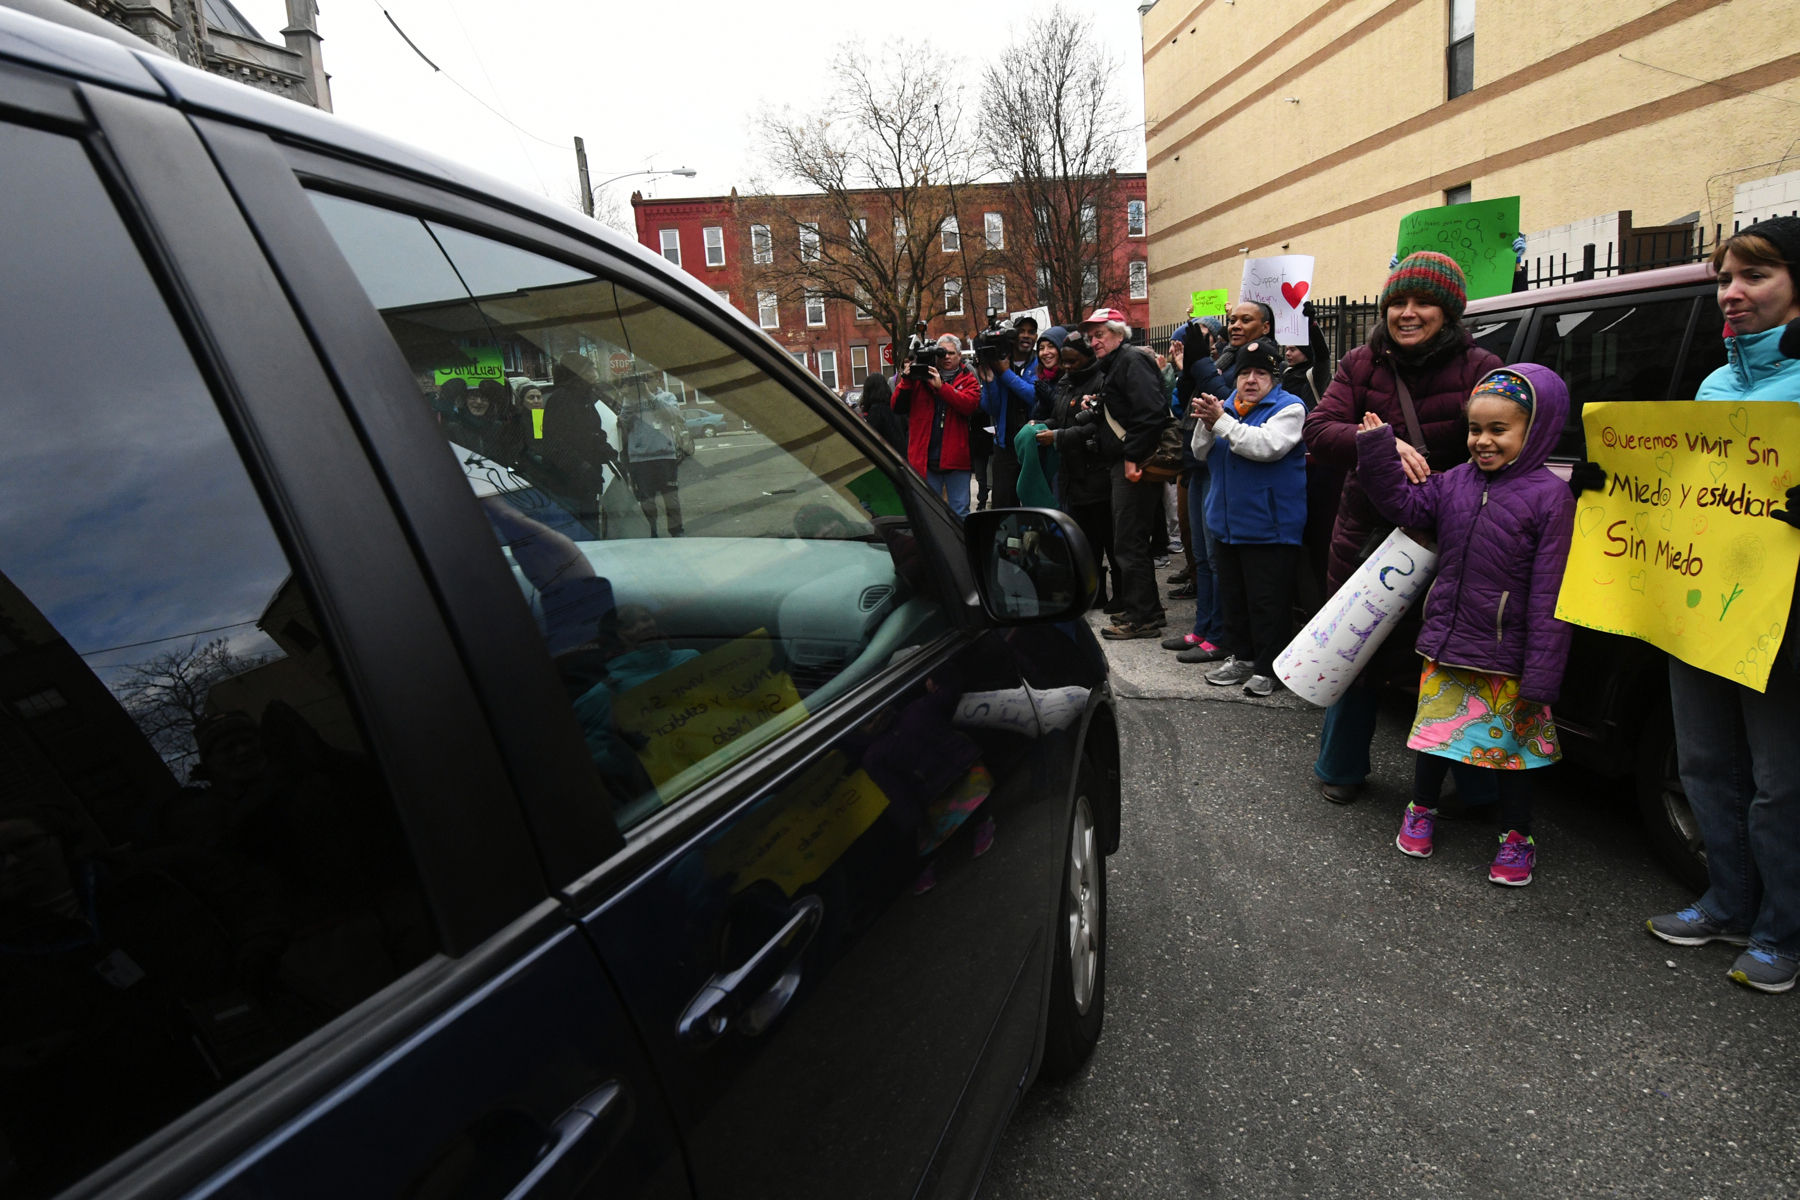 The four undocumented children of Camela Apolonio Hernandez are cheered as they leave sanctuary at Church of the Advocate in North Philadelphia to go to school.